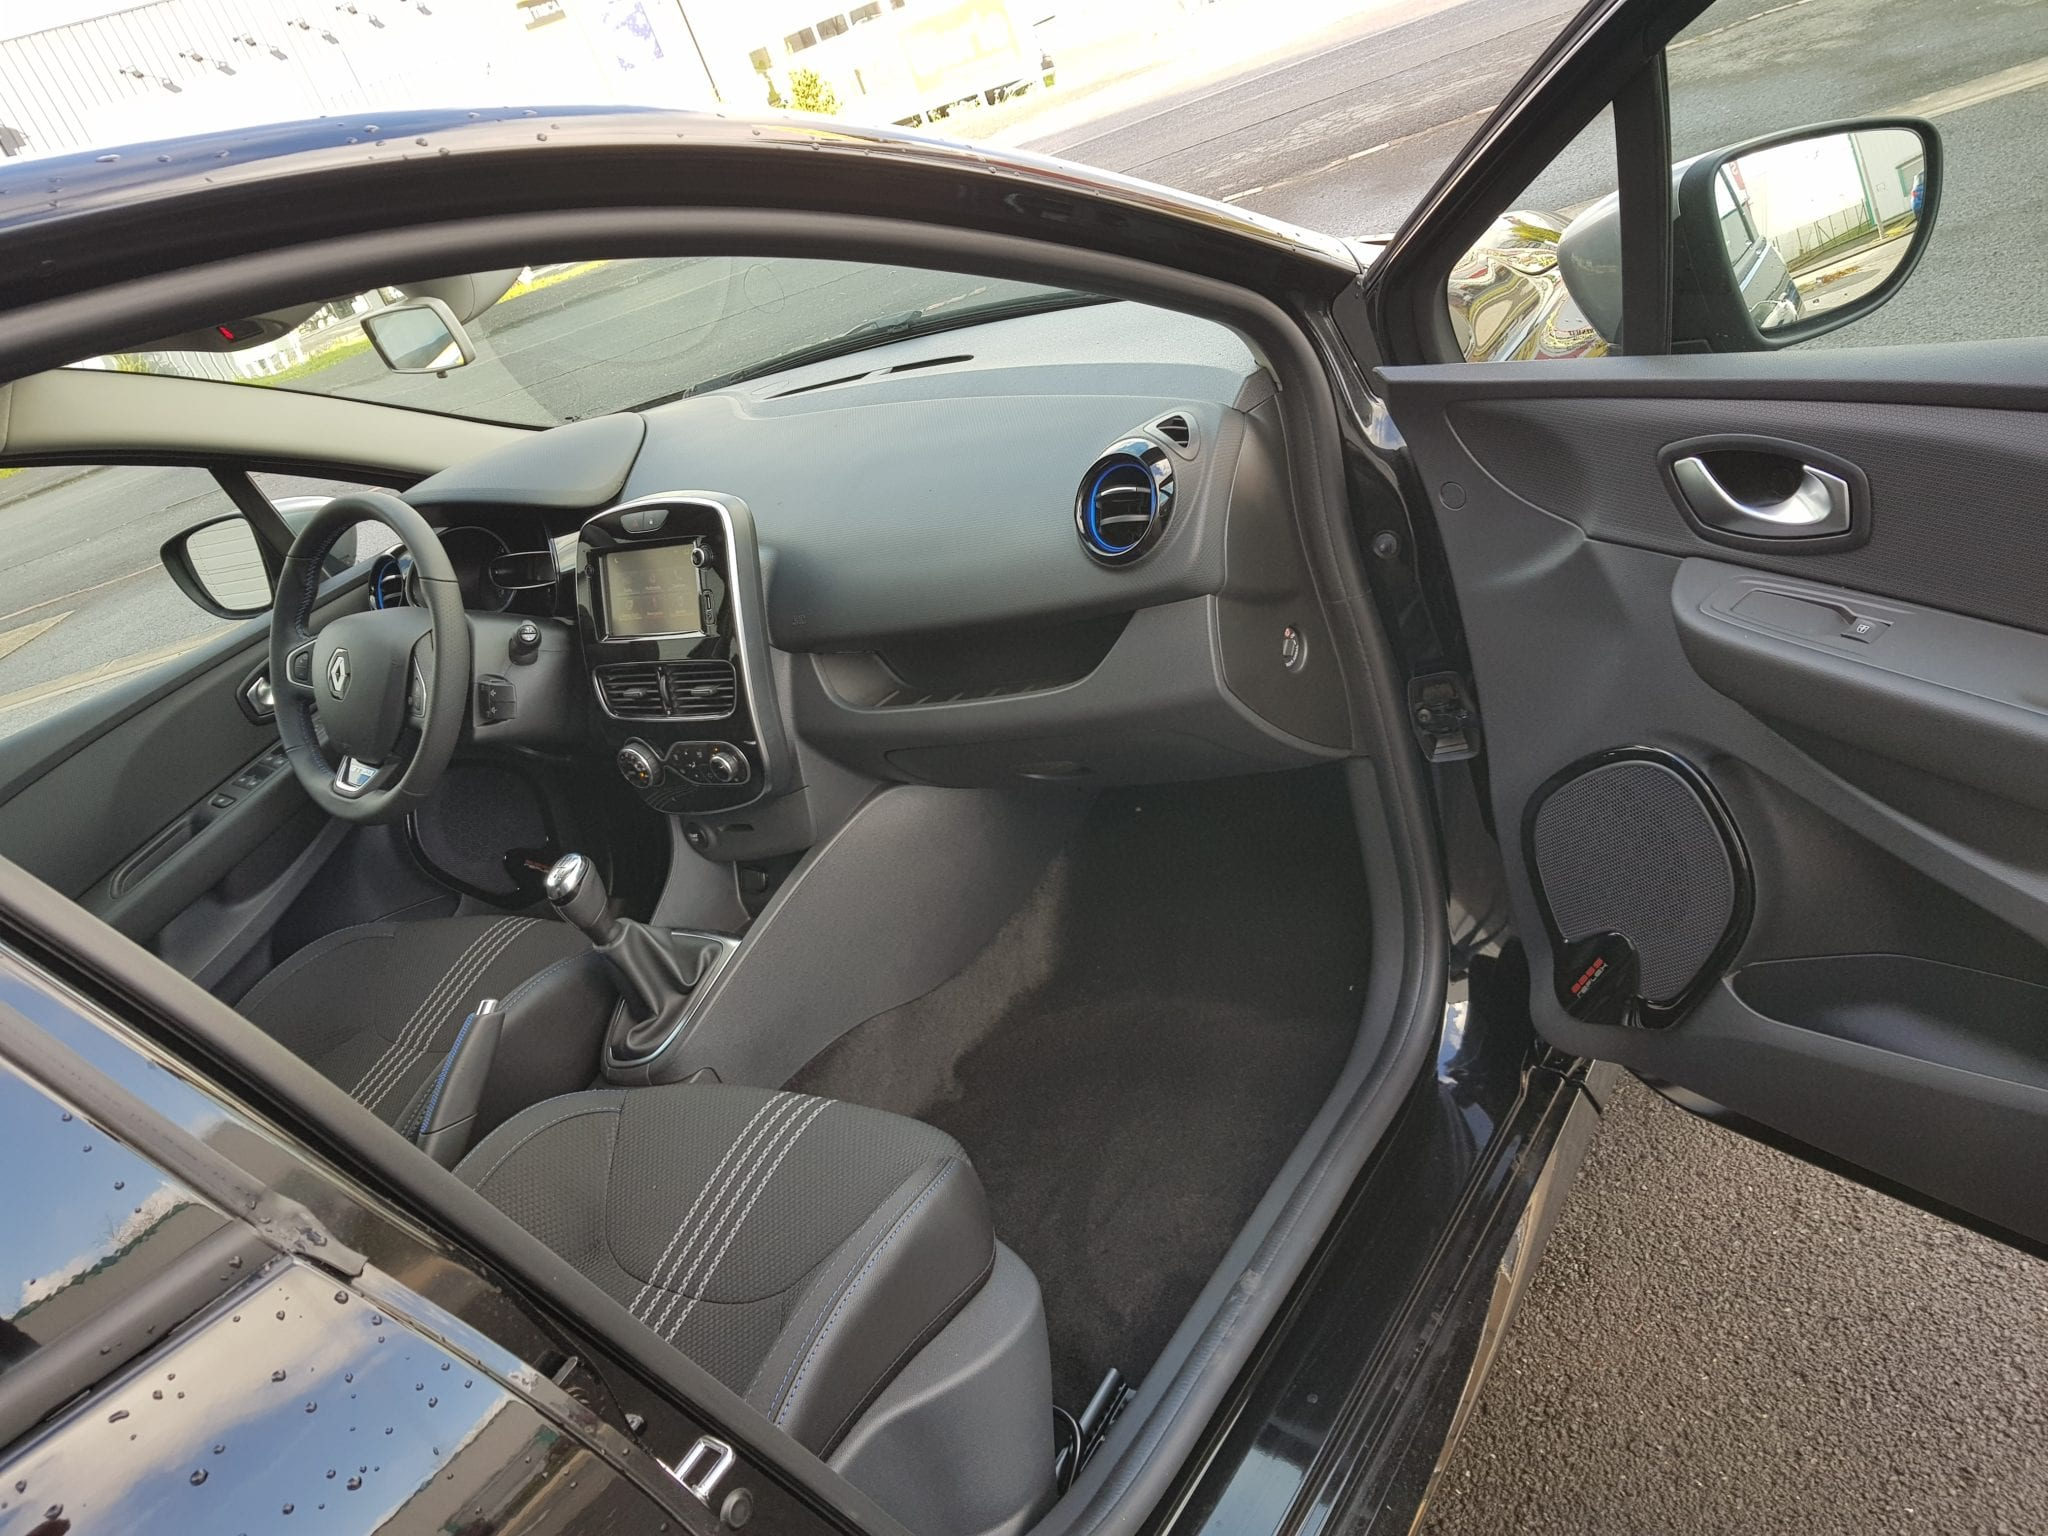 Renault NV CLIO 4 TCE 90 ENERGY GT-LINE - Image 4